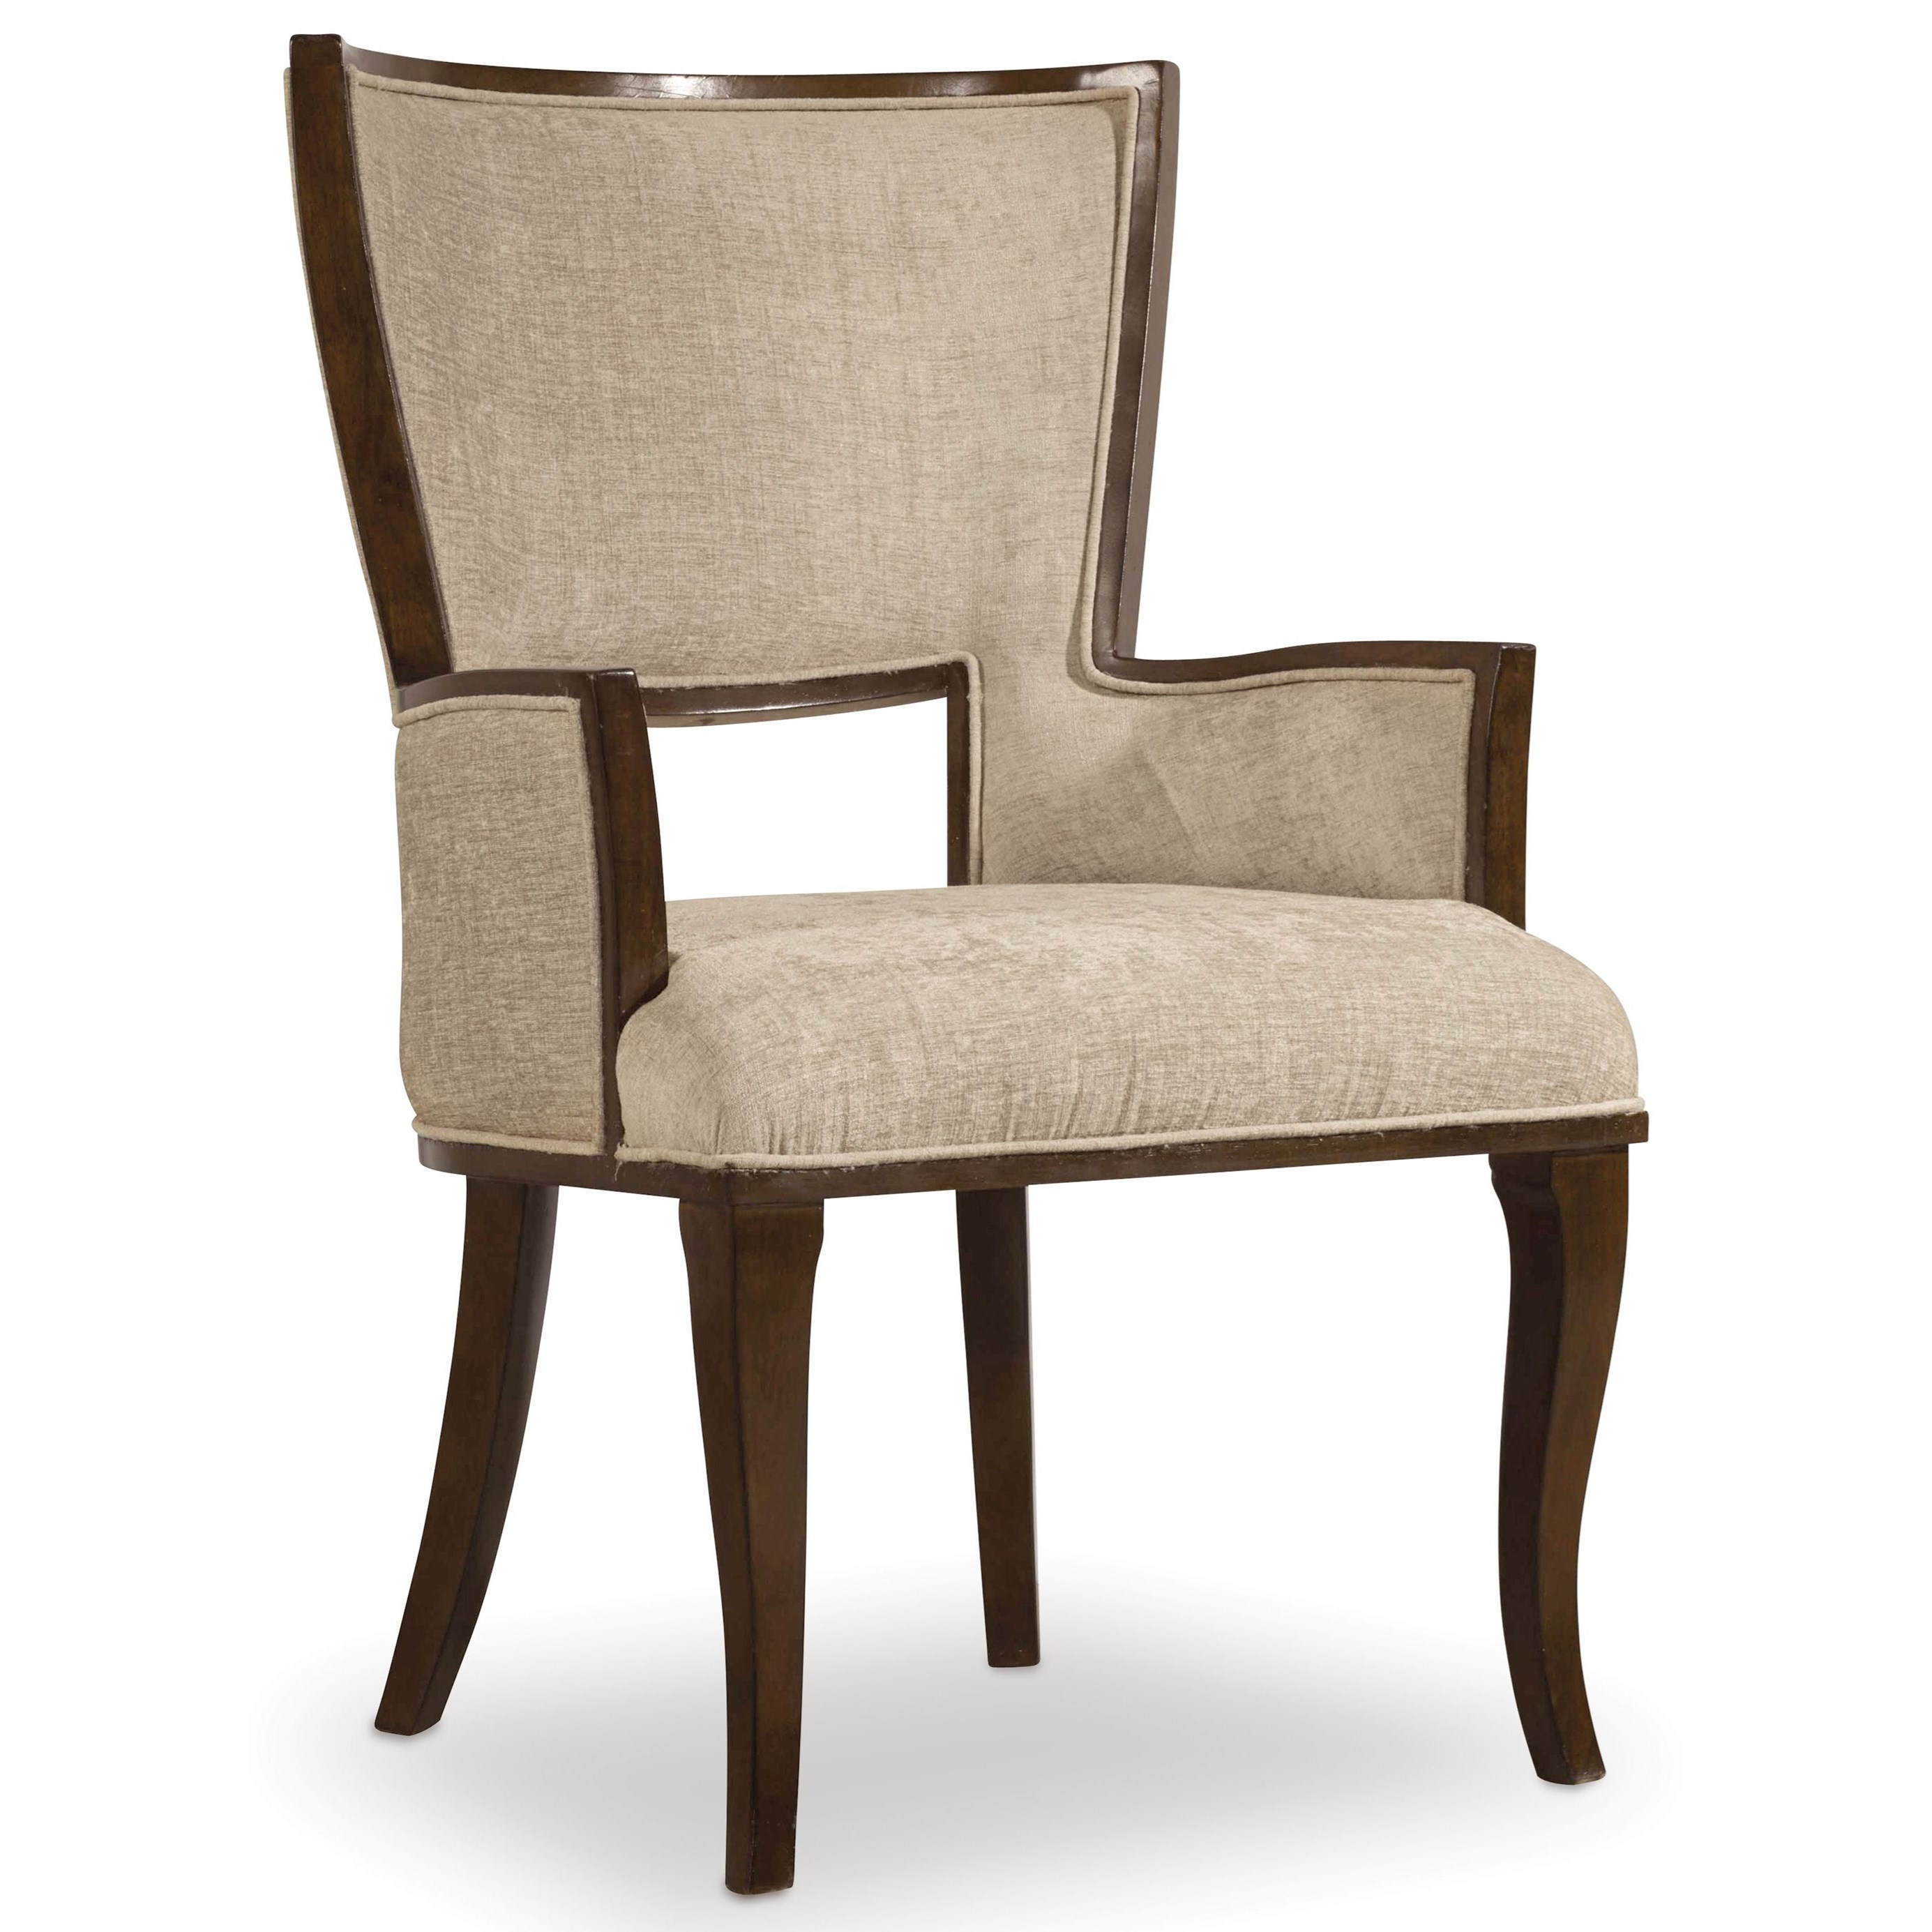 Hooker Furniture Skyline Upholstered Arm Chair - Item Number: 5336-75400